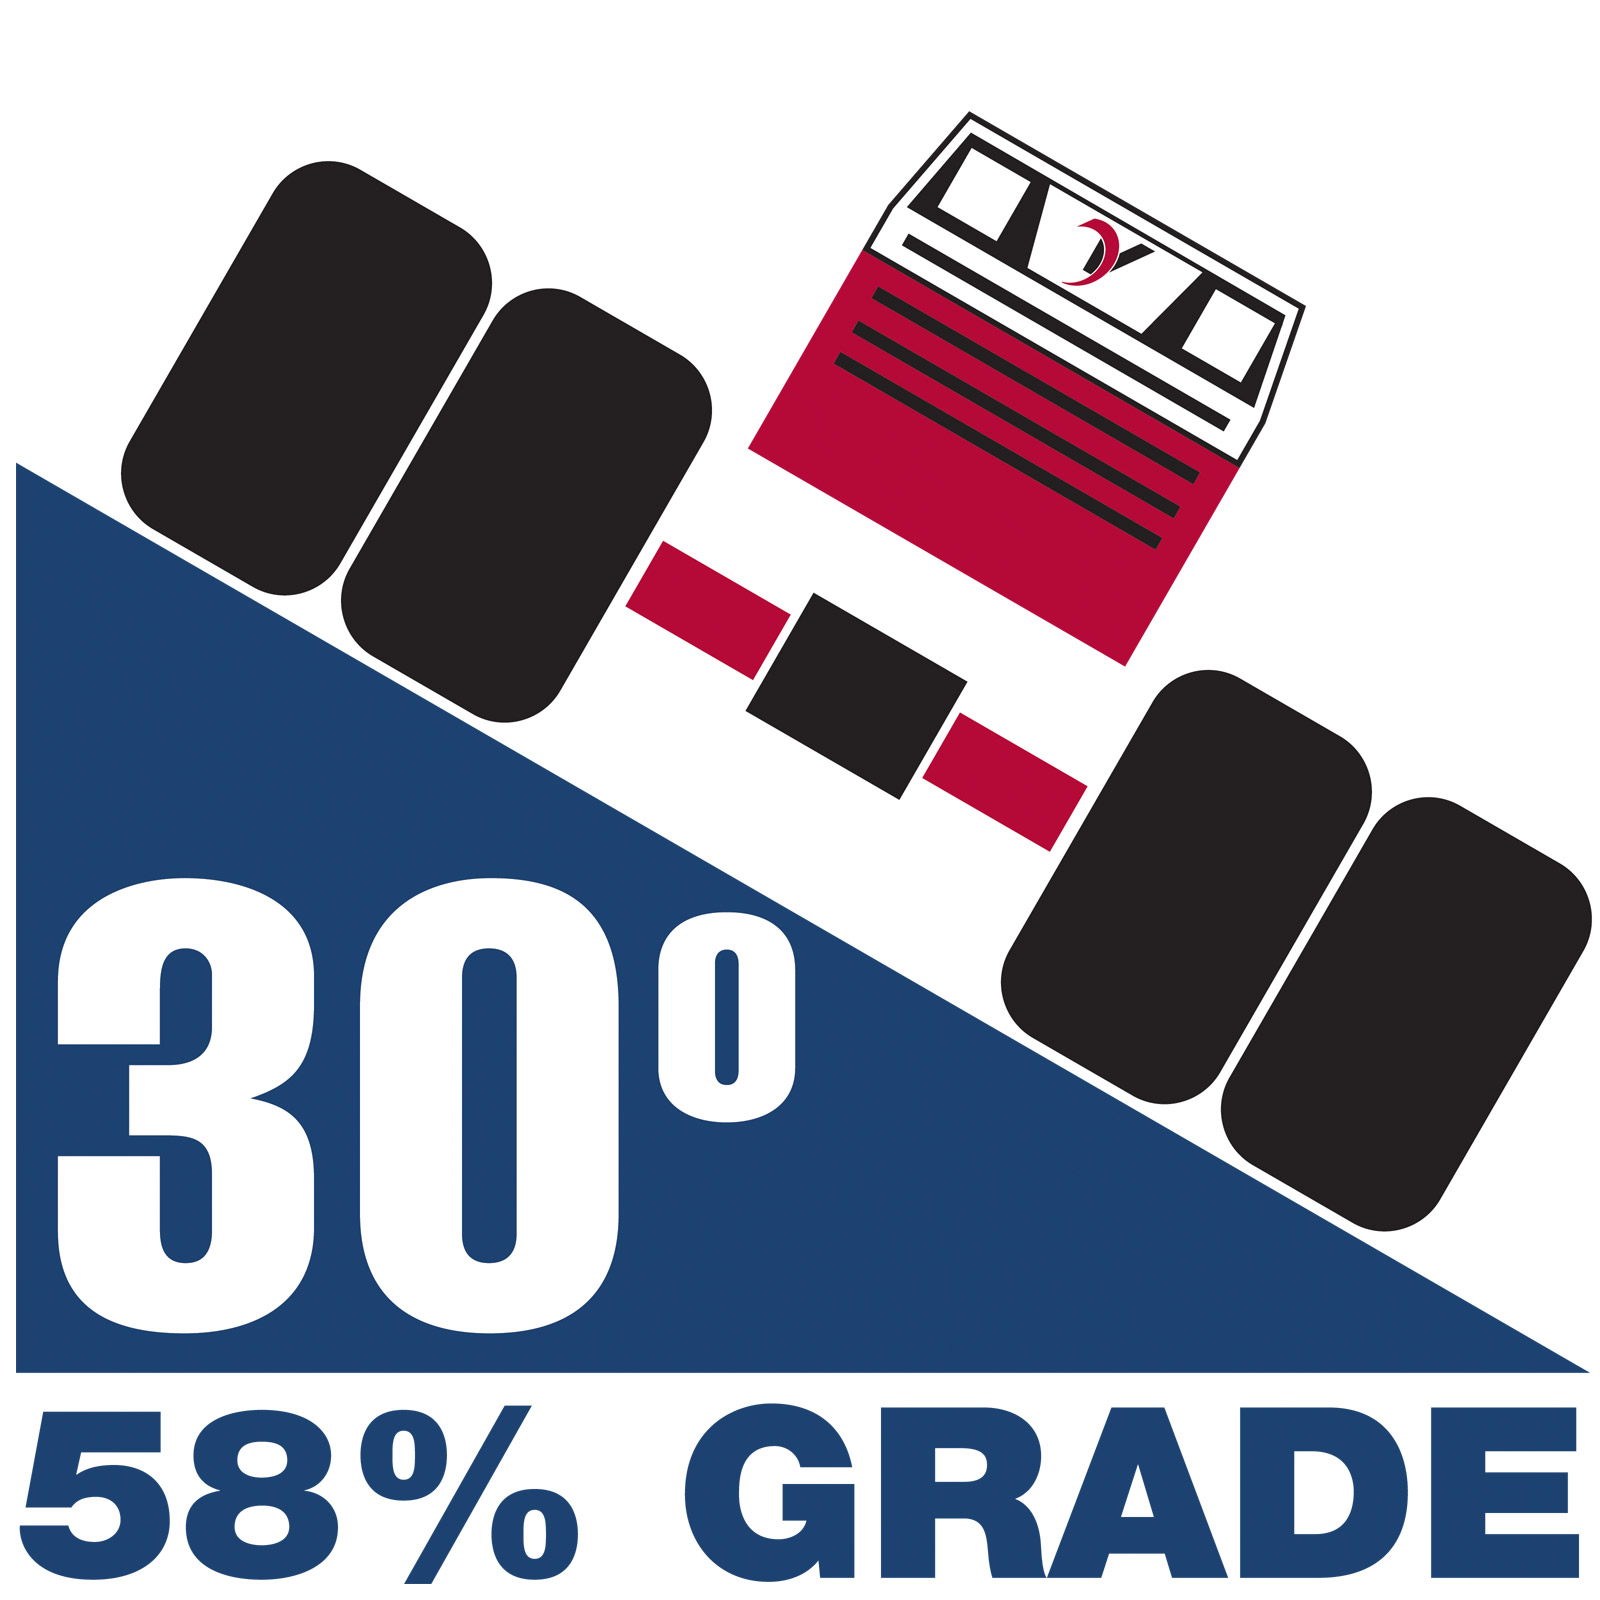 30 Degree Slope Rating With Duals  Ventrac 4500 Outfitted With Dual Wheels  Can Safely Operate